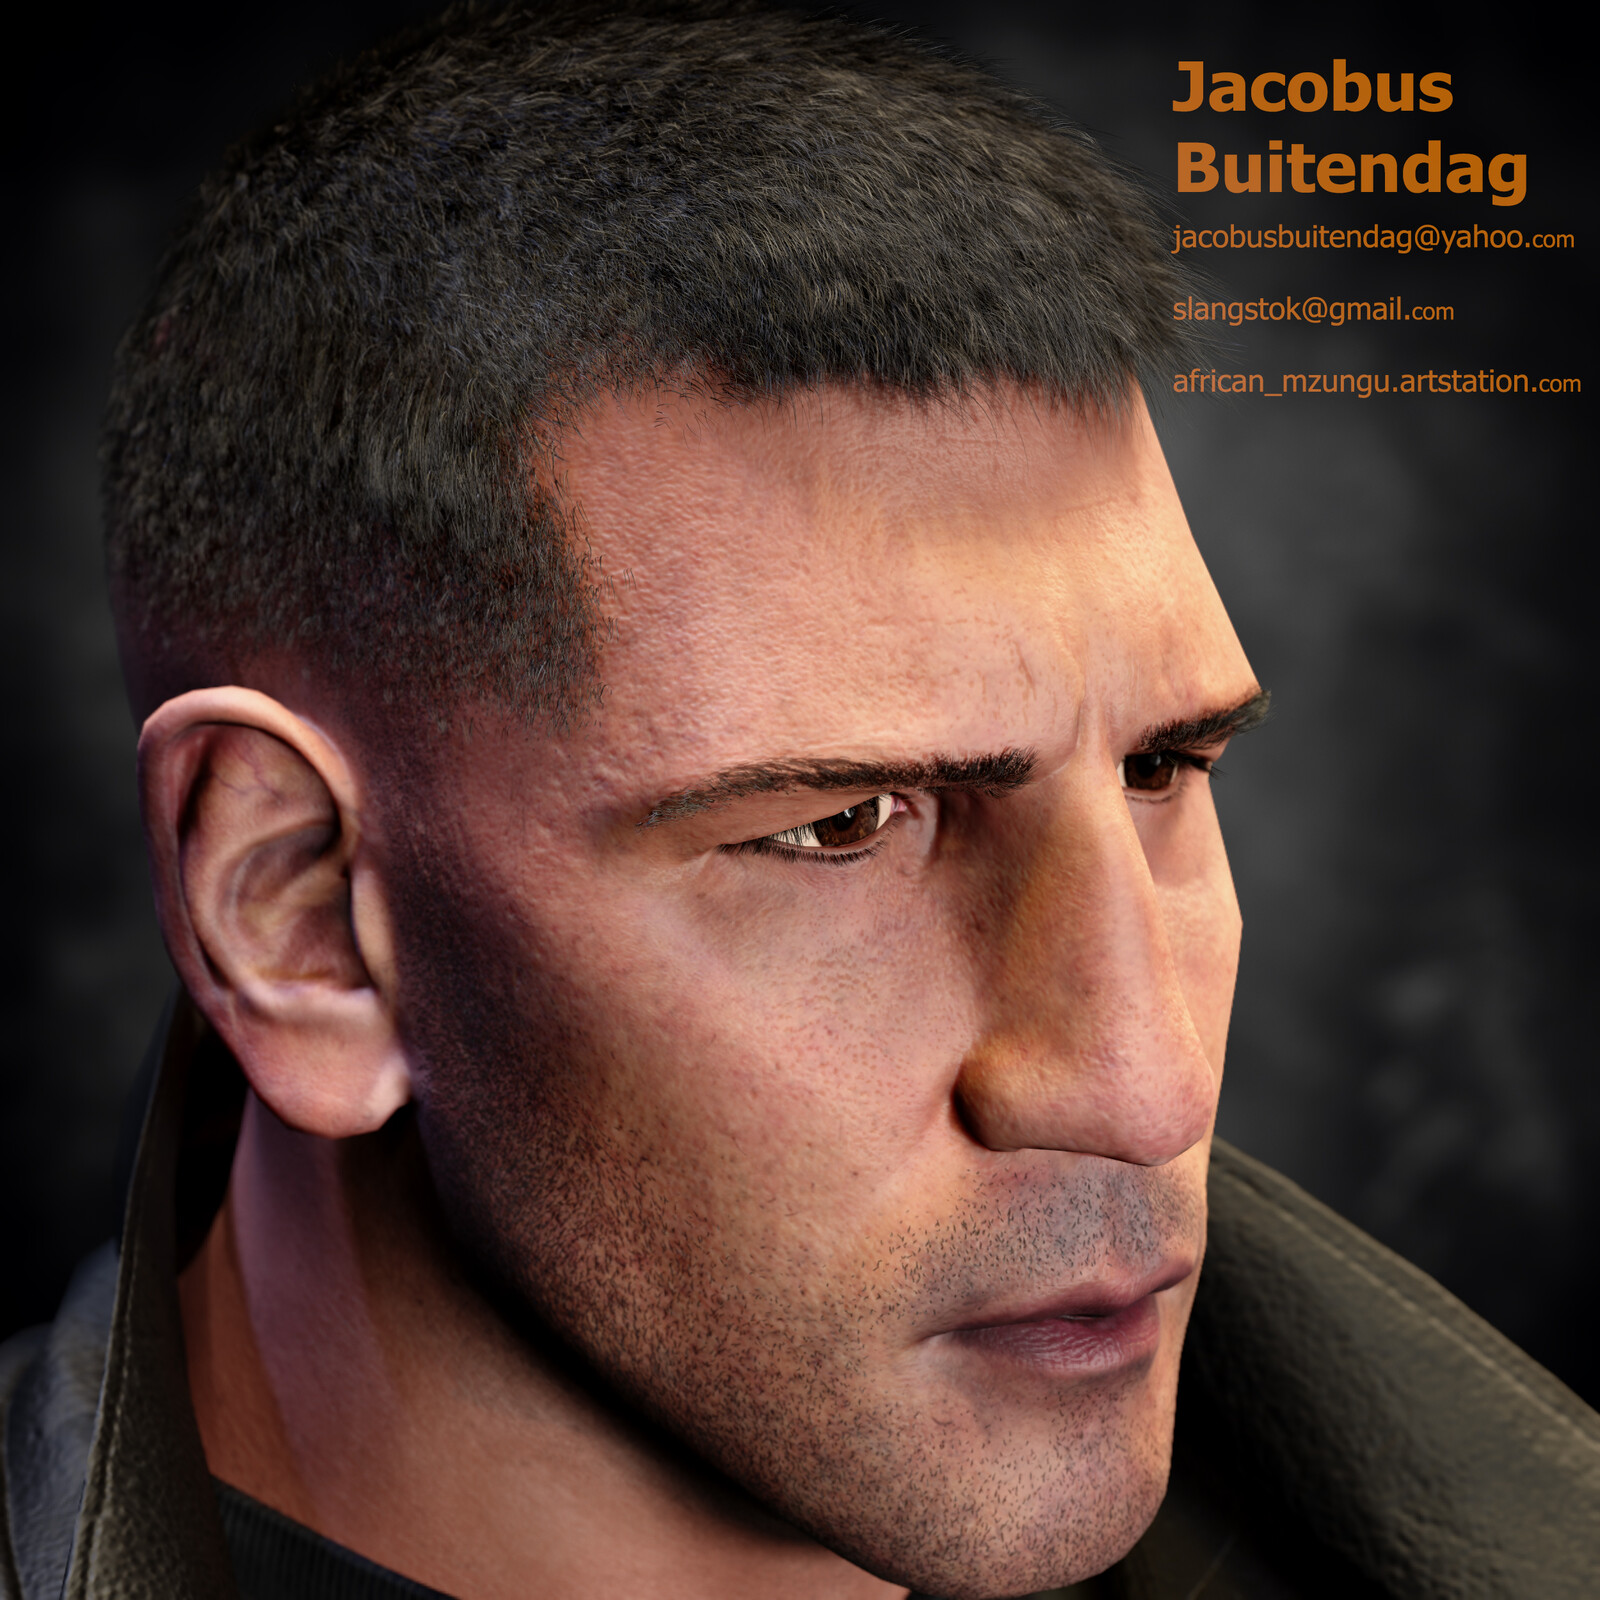 Side view of the face (Low res render)